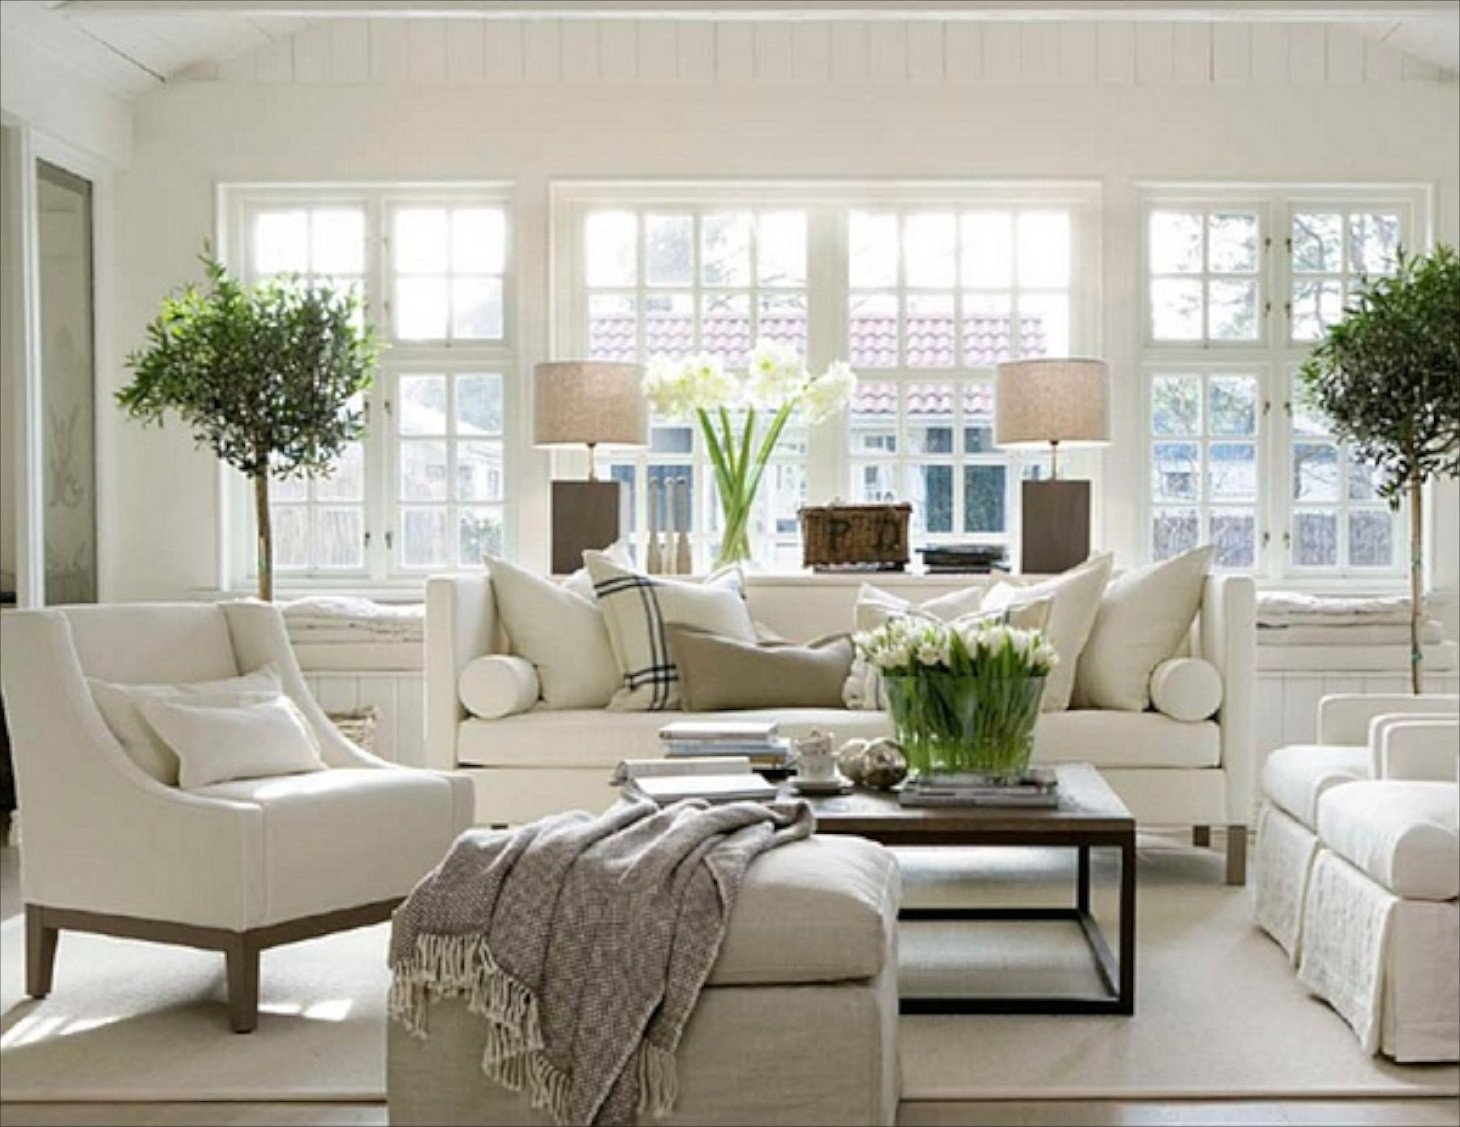 Cozy Traditional Living Room 22 Cozy Traditional Living Room Indoor Plant Modern White